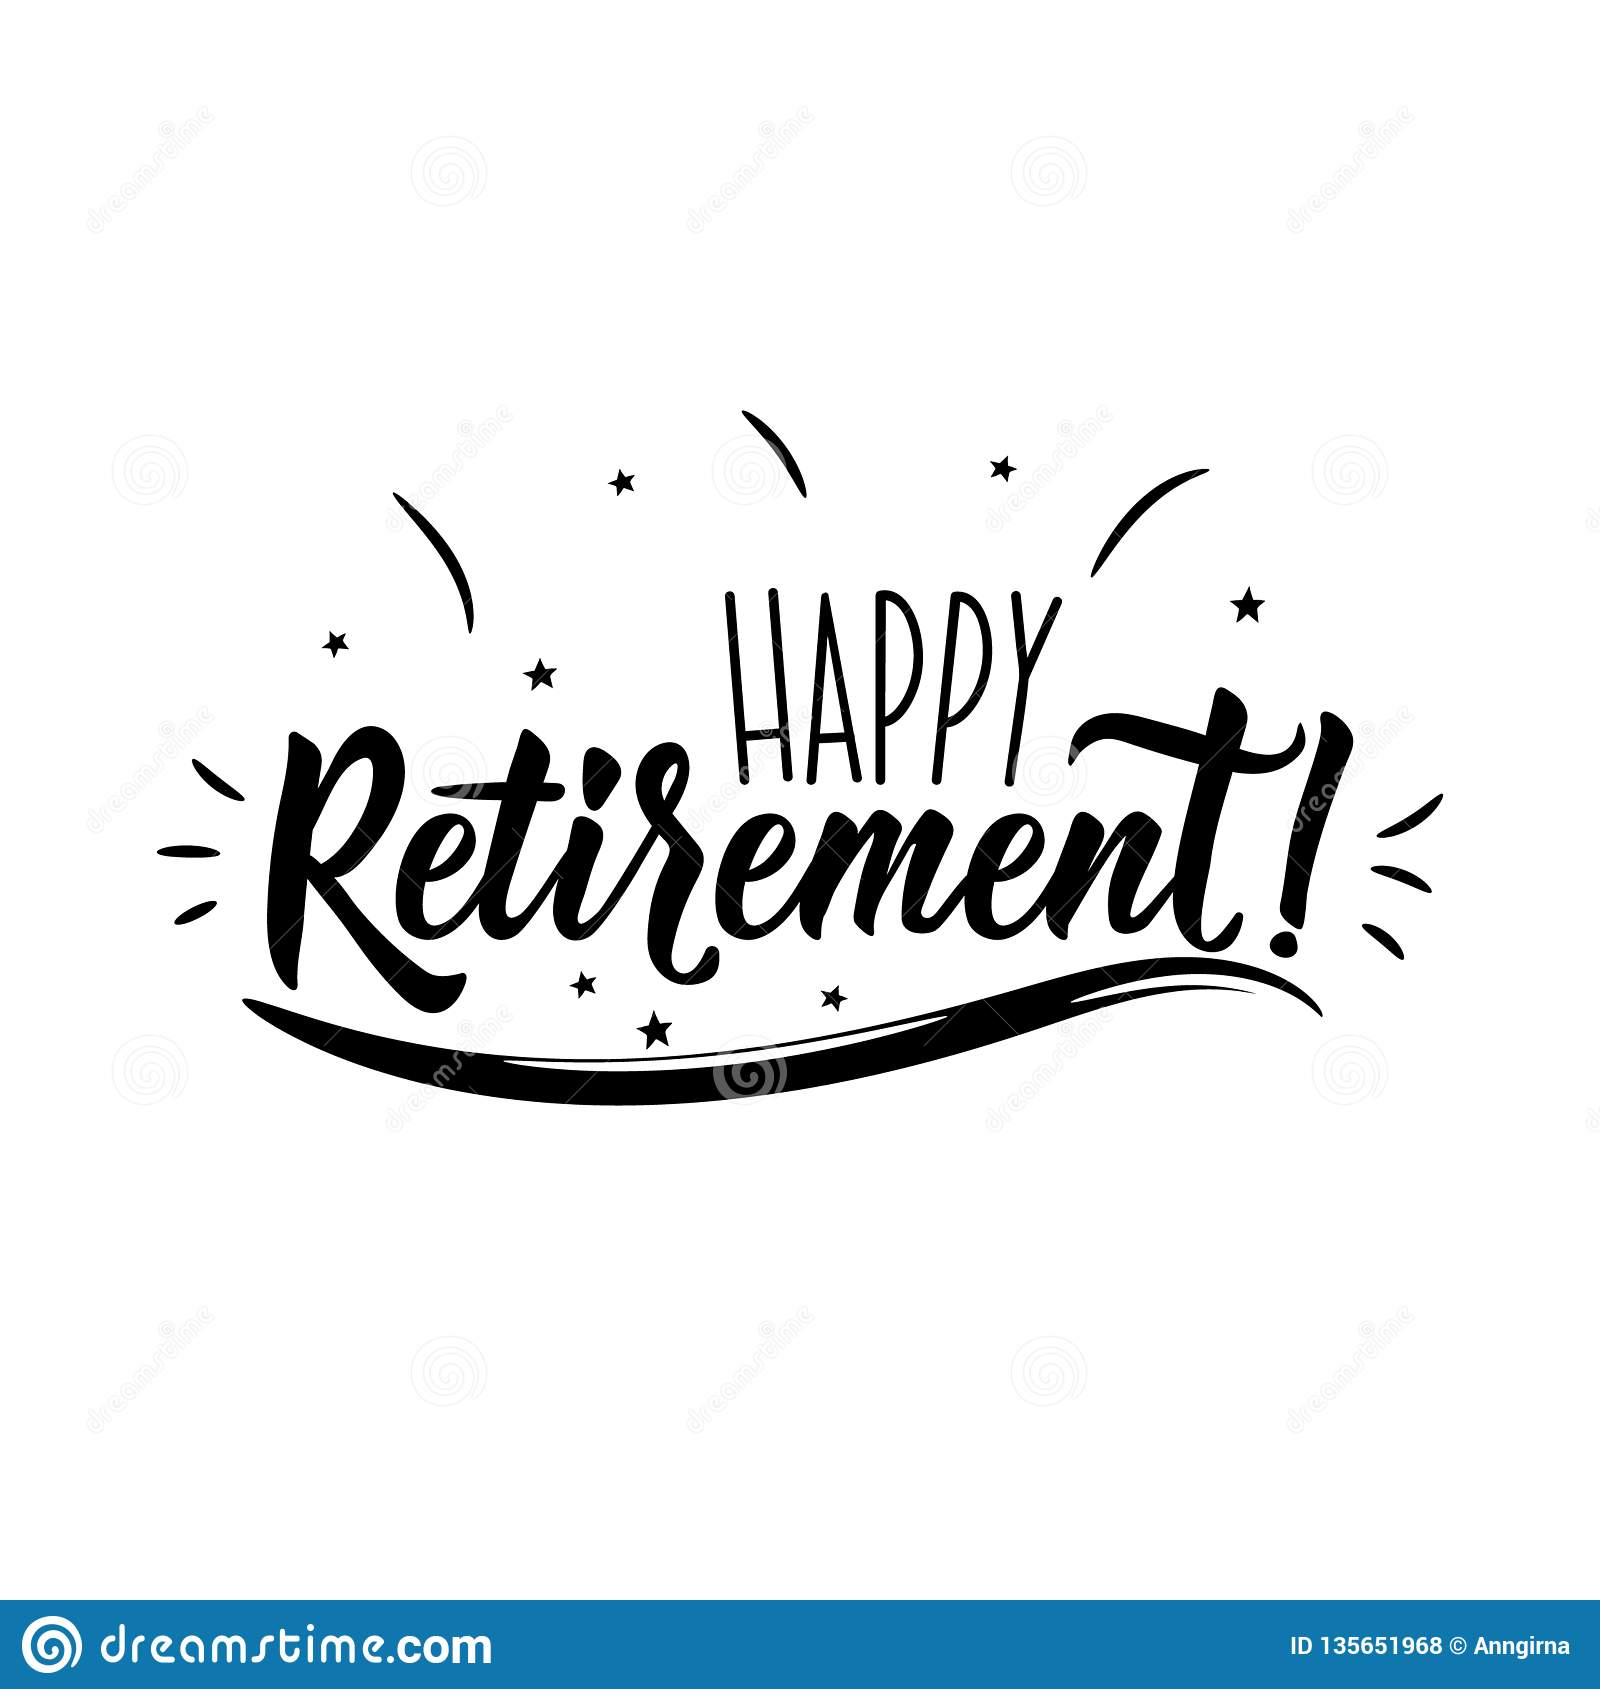 image about Lettering Printable identify Joyful Retirement. Favourable Printable Indicator. Lettering